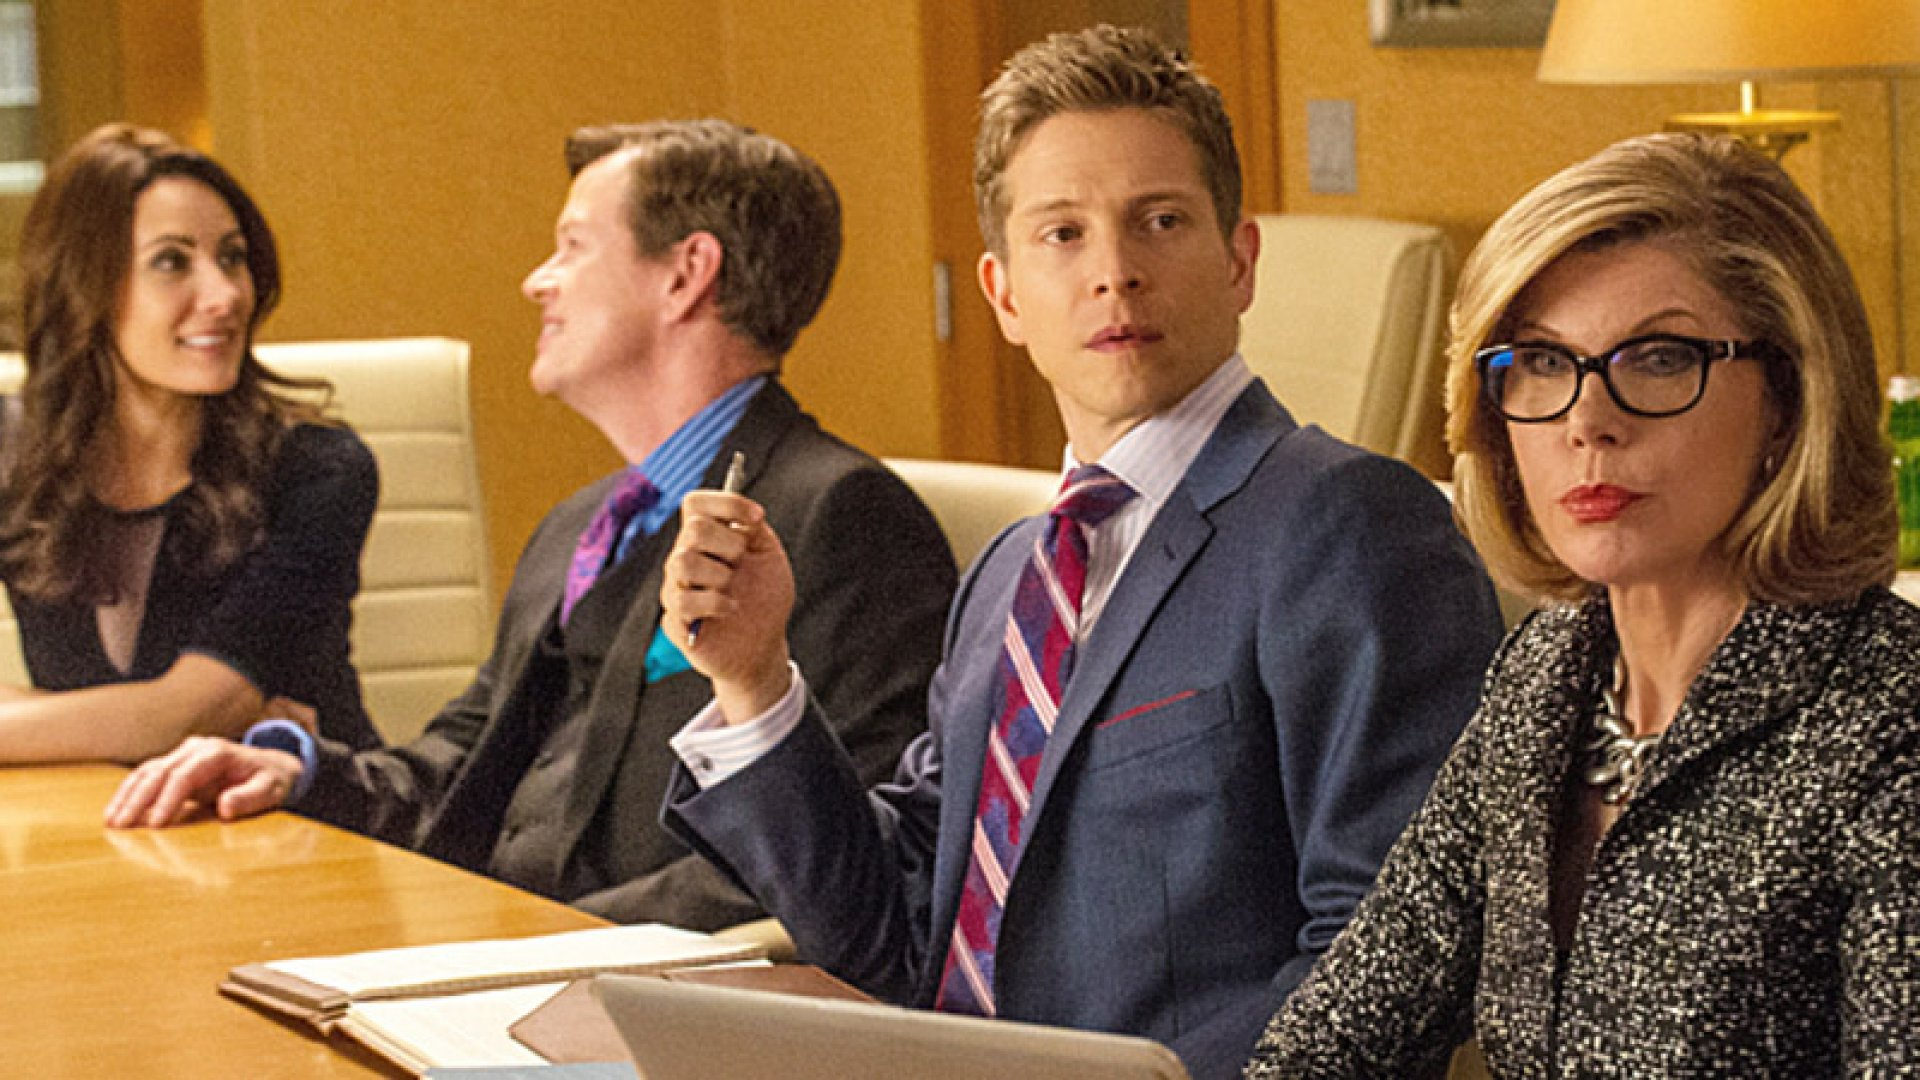 The Good Wife: The Dirty Compromises of Asking for Money